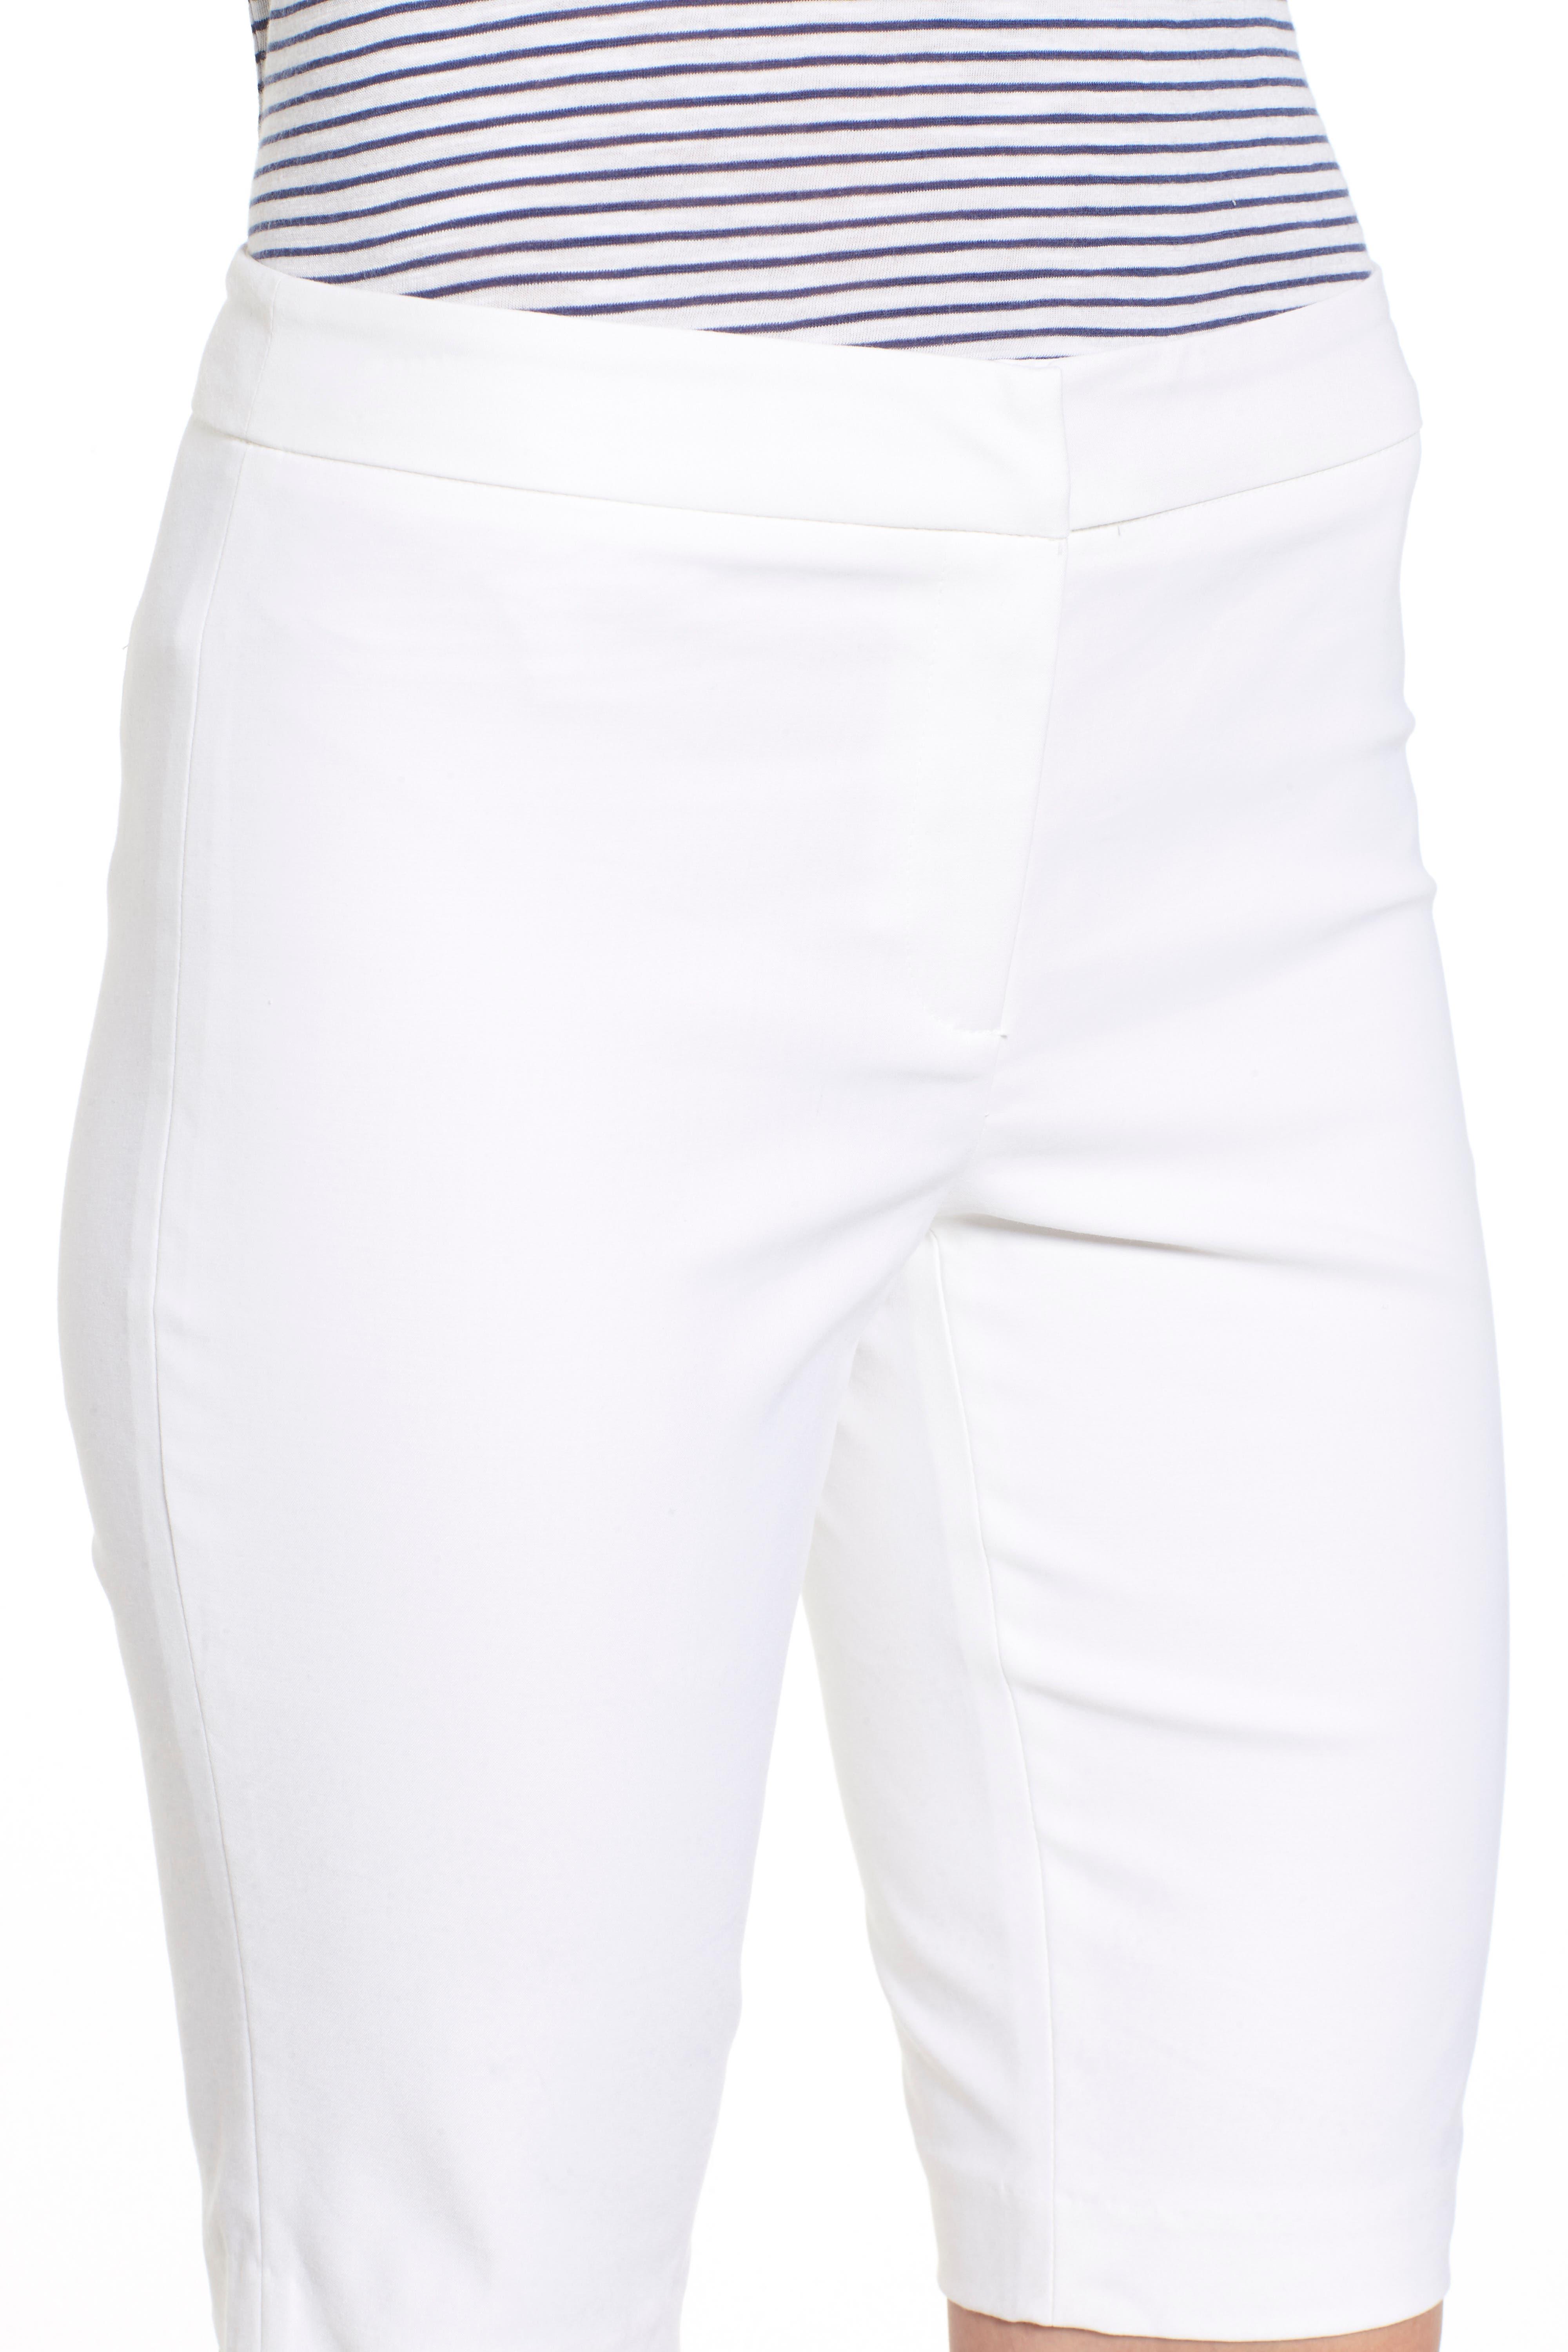 'The Perfect' Stretch Woven Trouser Shorts,                             Alternate thumbnail 4, color,                             PAPER WHITE